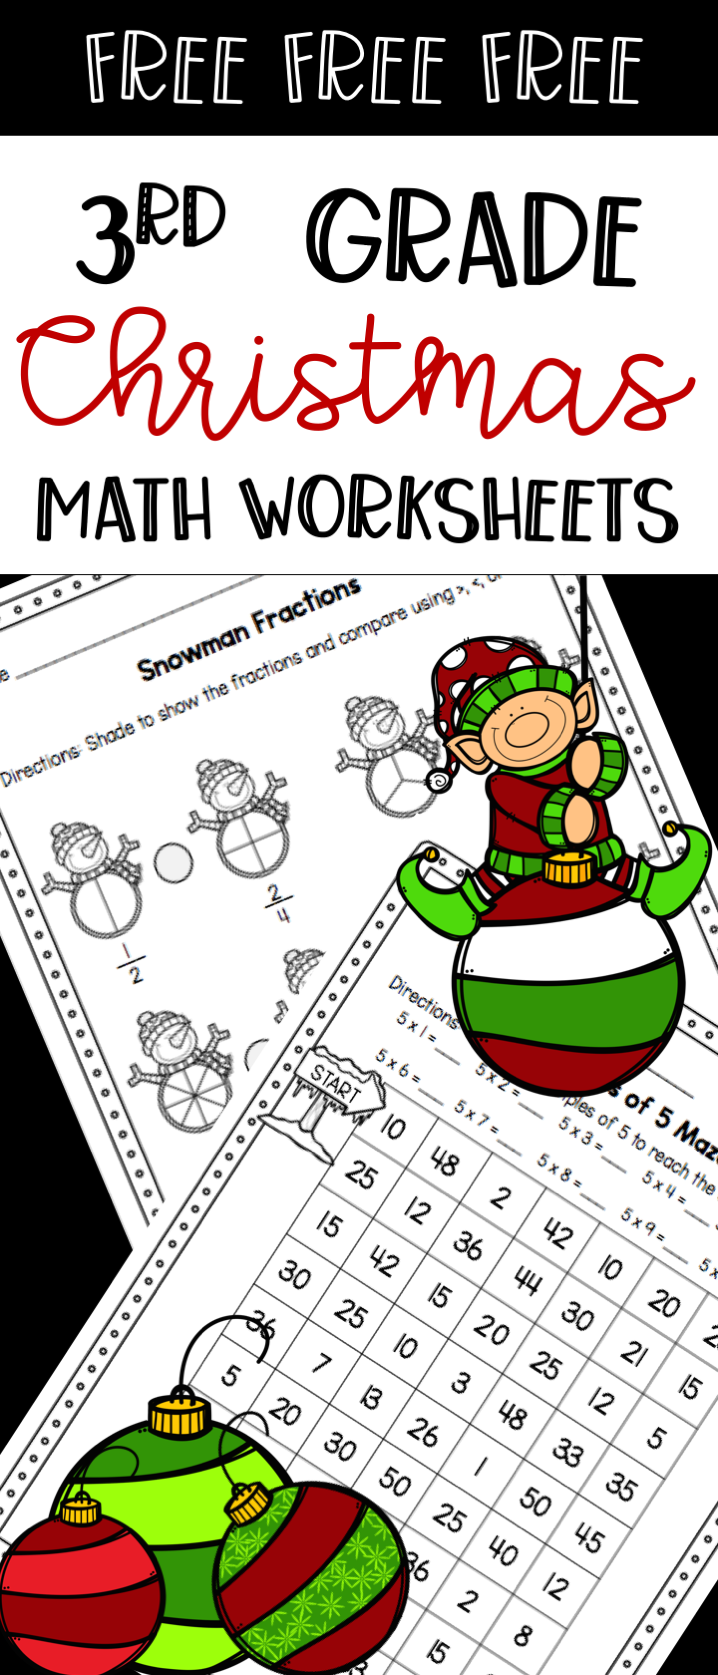 Free 3rd grade Christmas math worksheets - comparing fractions and  multiplication products of 5 - fun rev…   Christmas math worksheets [ 1675 x 718 Pixel ]